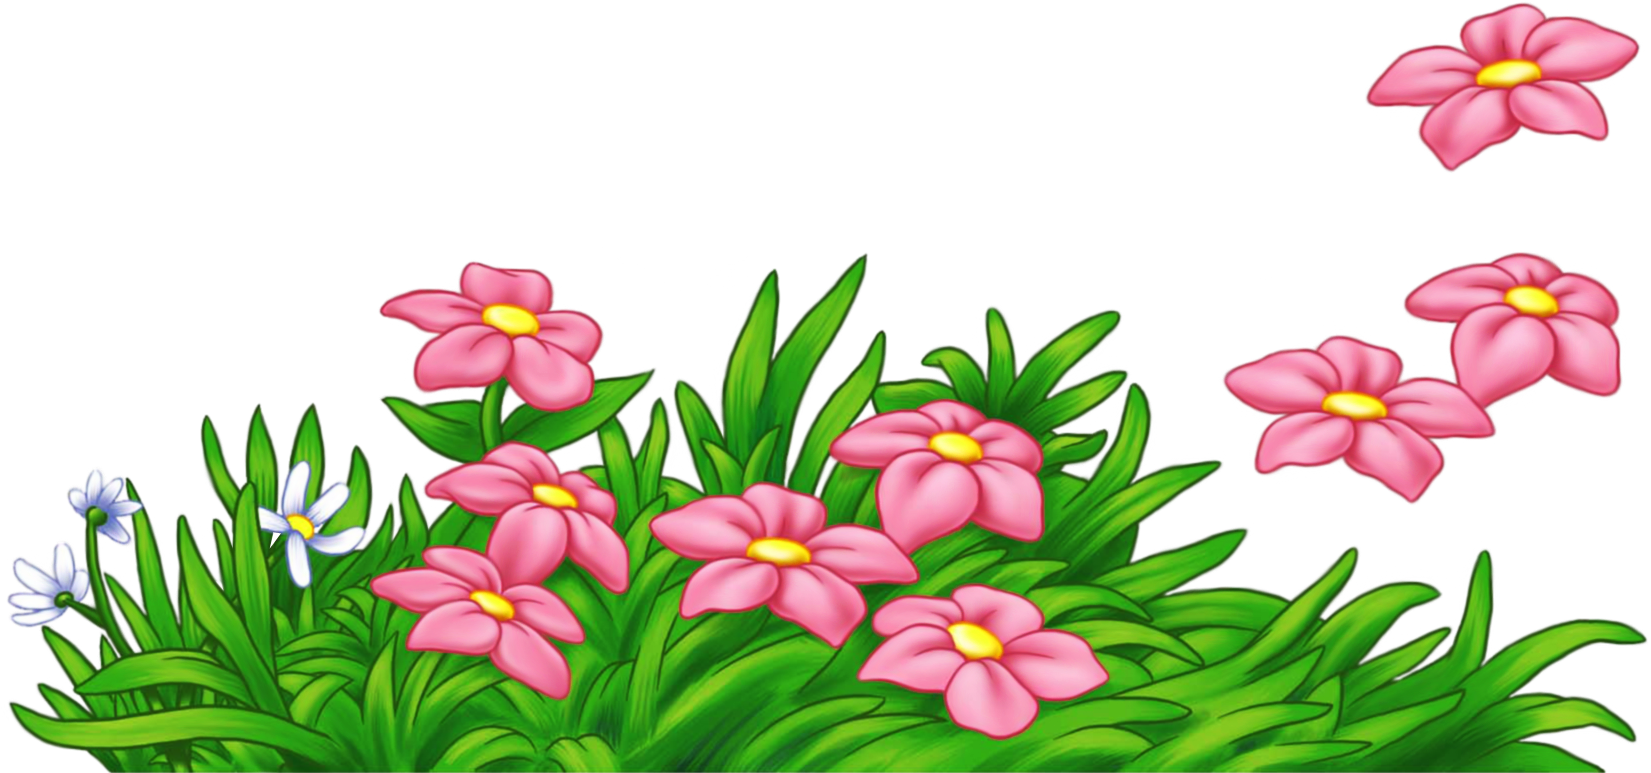 Swamp clipart pink grass. With flowers png cartoon